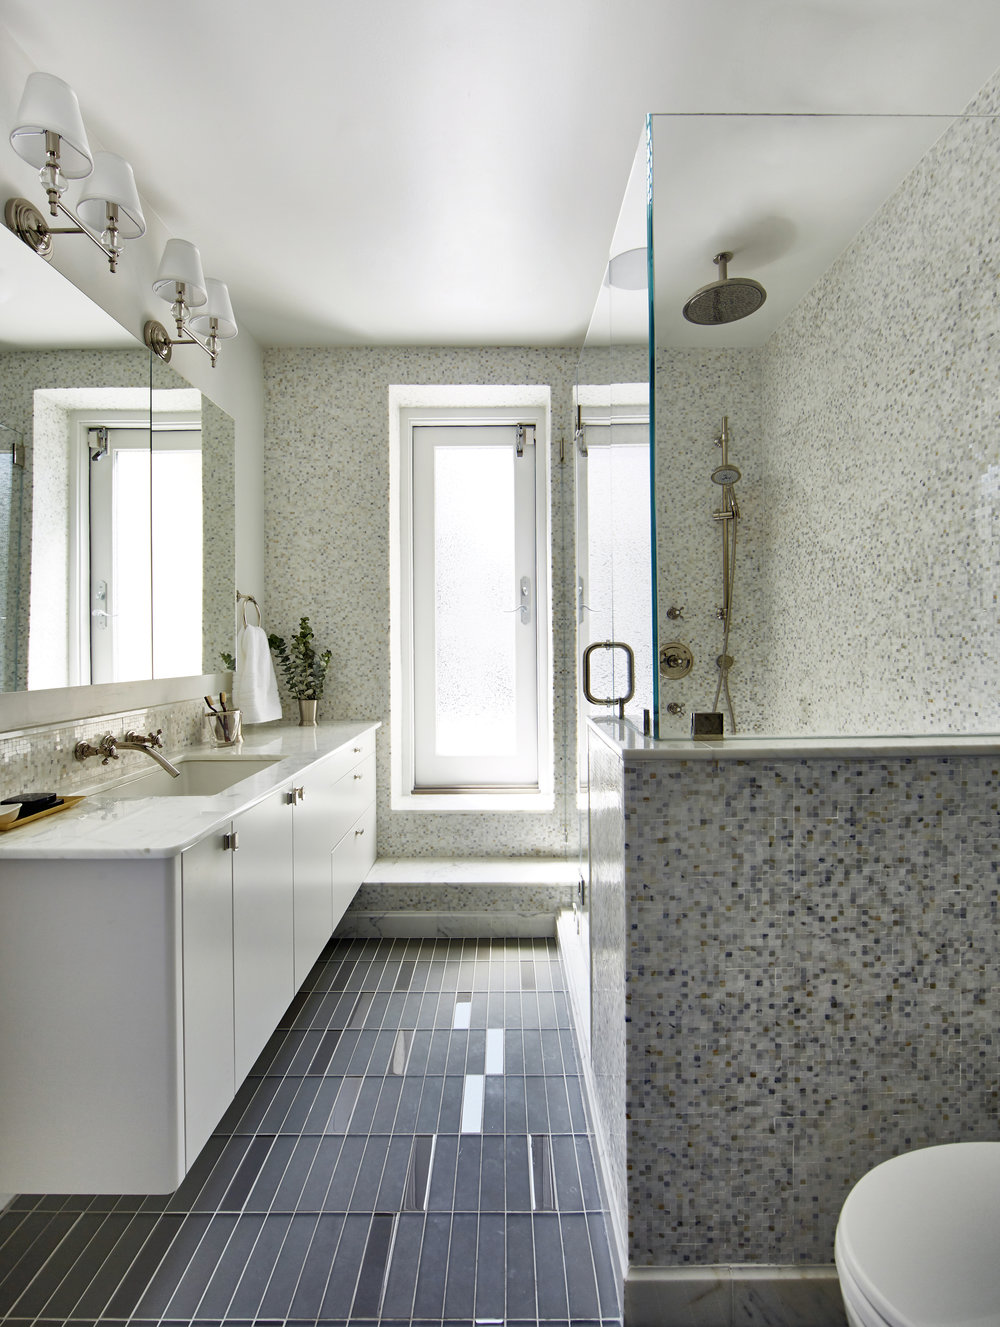 Luxury-Full-Bathroom-Townhouse-JMorris-Design-Interior-Designer-Brooklyn-New-York-Online.jpg